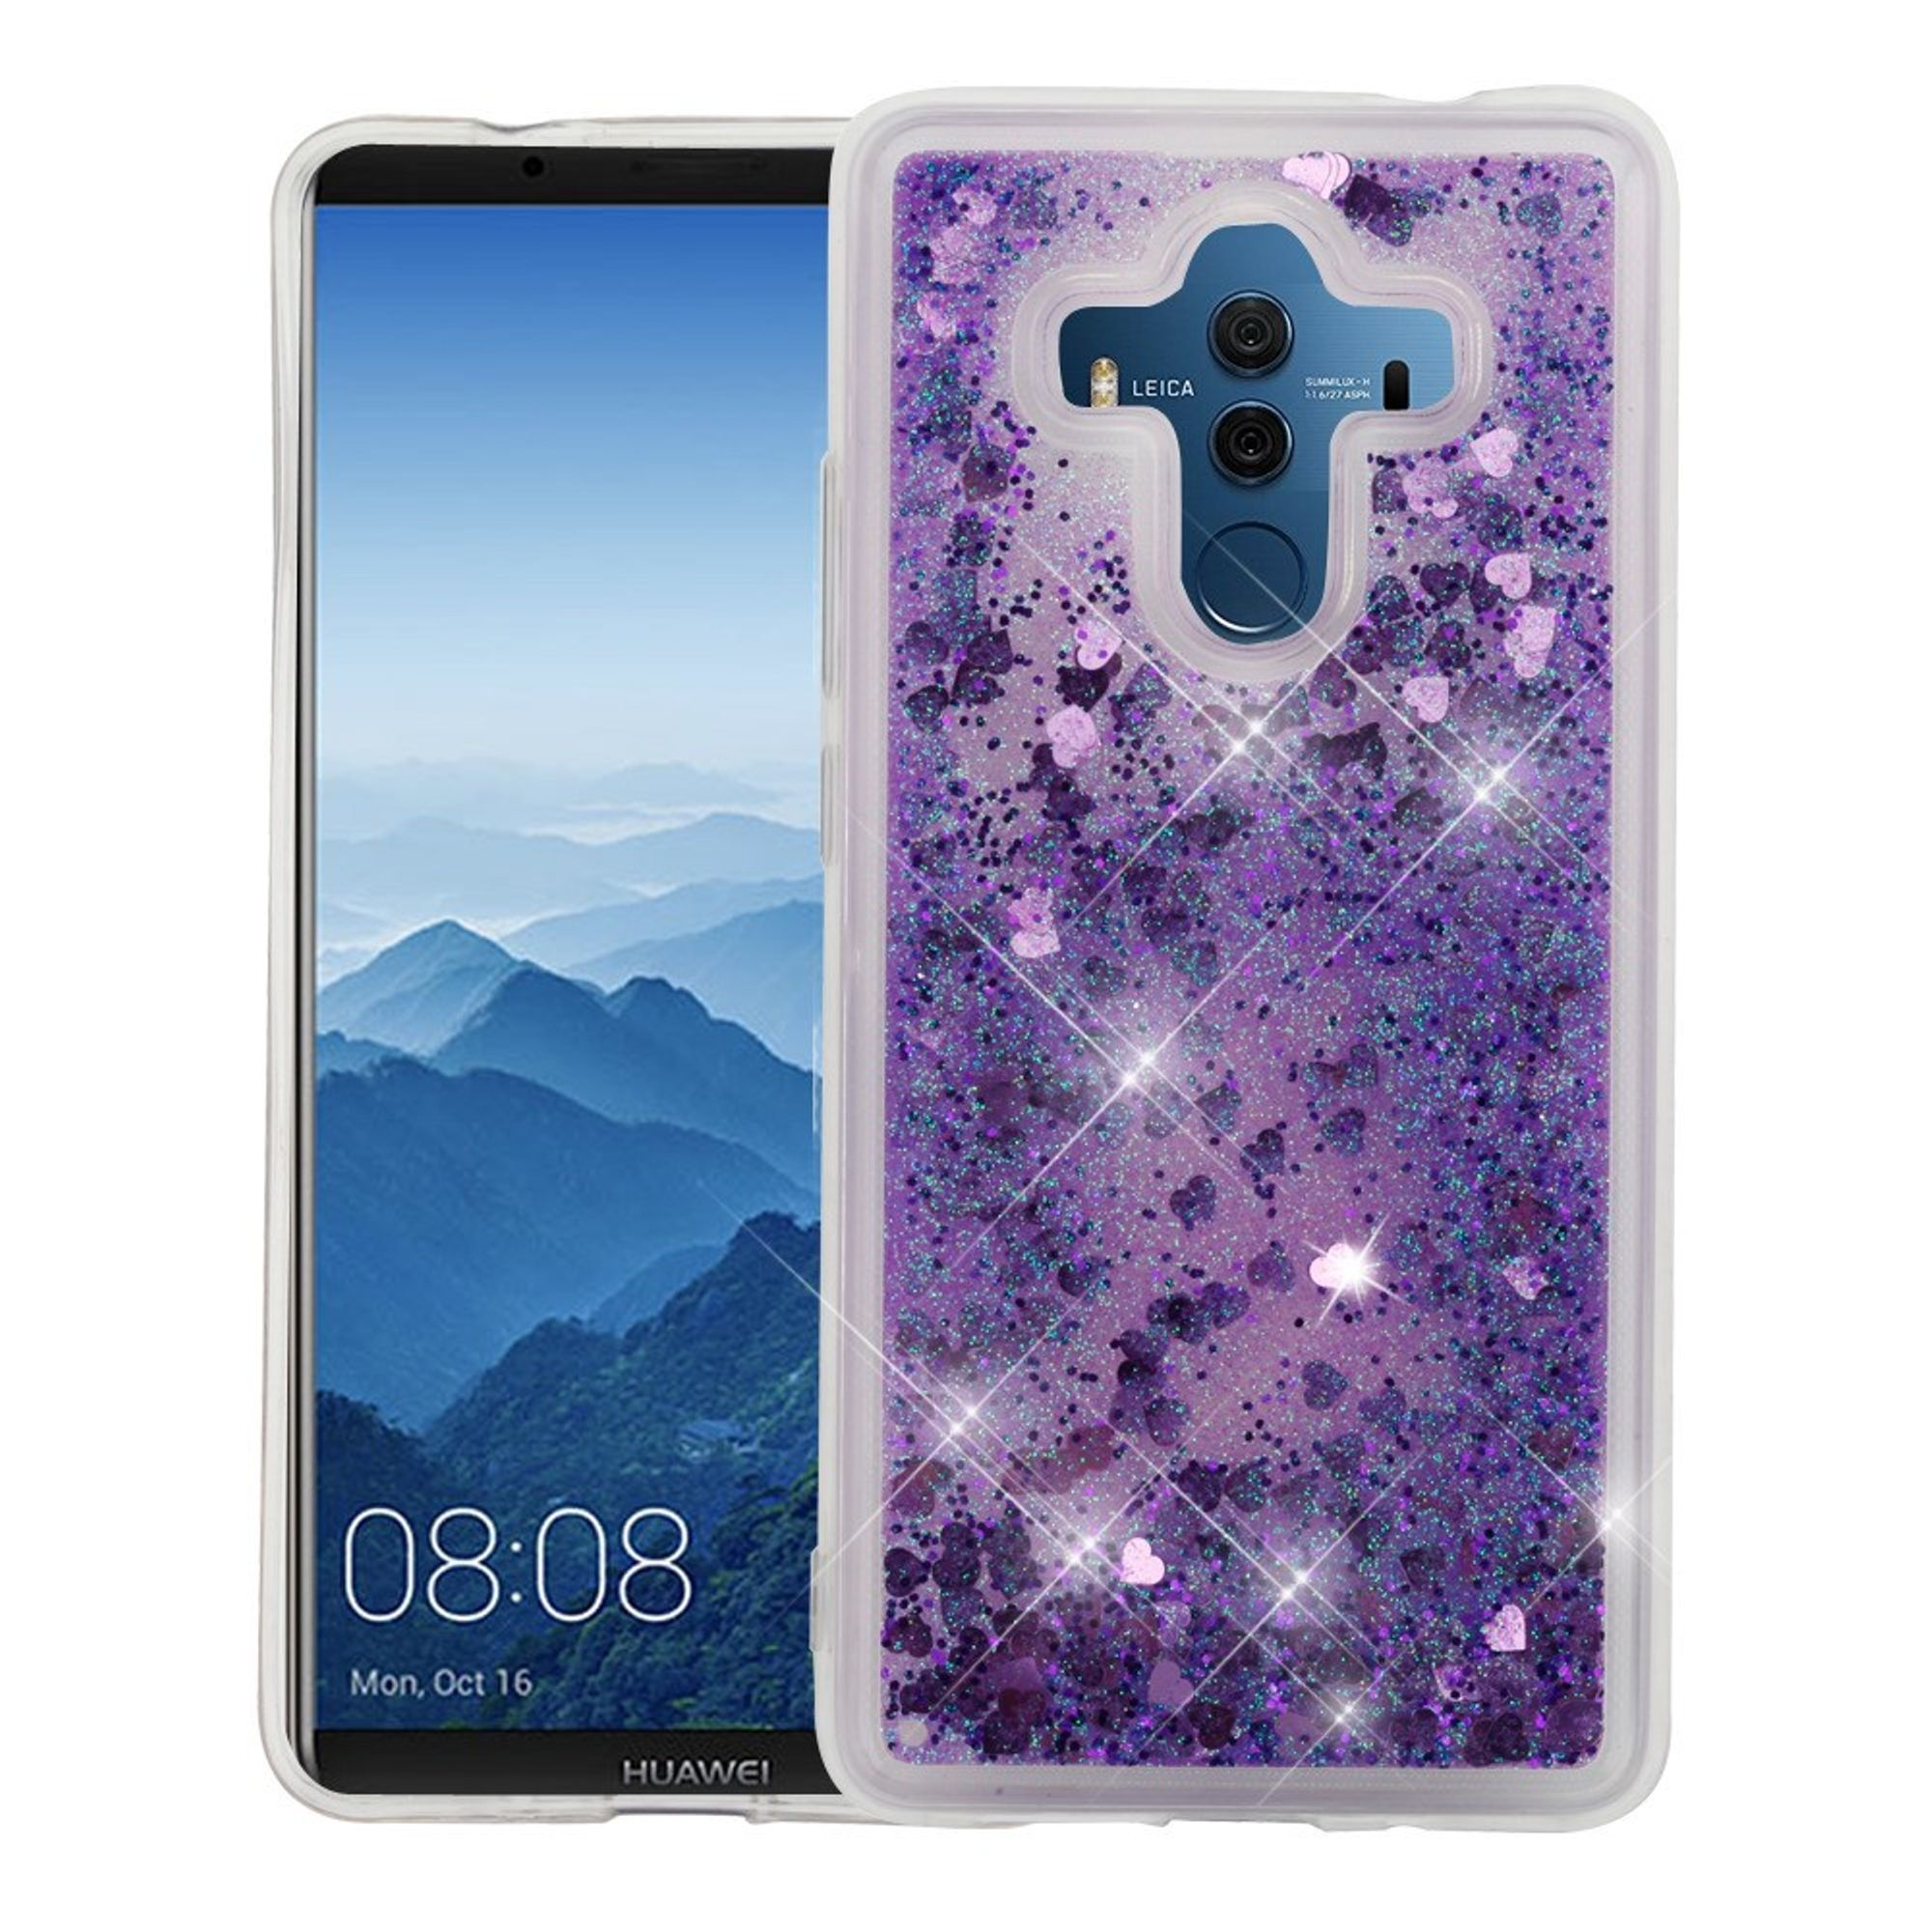 Huawei Mate 10 Pro case by Insten Luxury Quicksand Glitter Liquid Floating Sparkle Bling Fashion Phone Case Cover for Huawei Mate 10 Pro